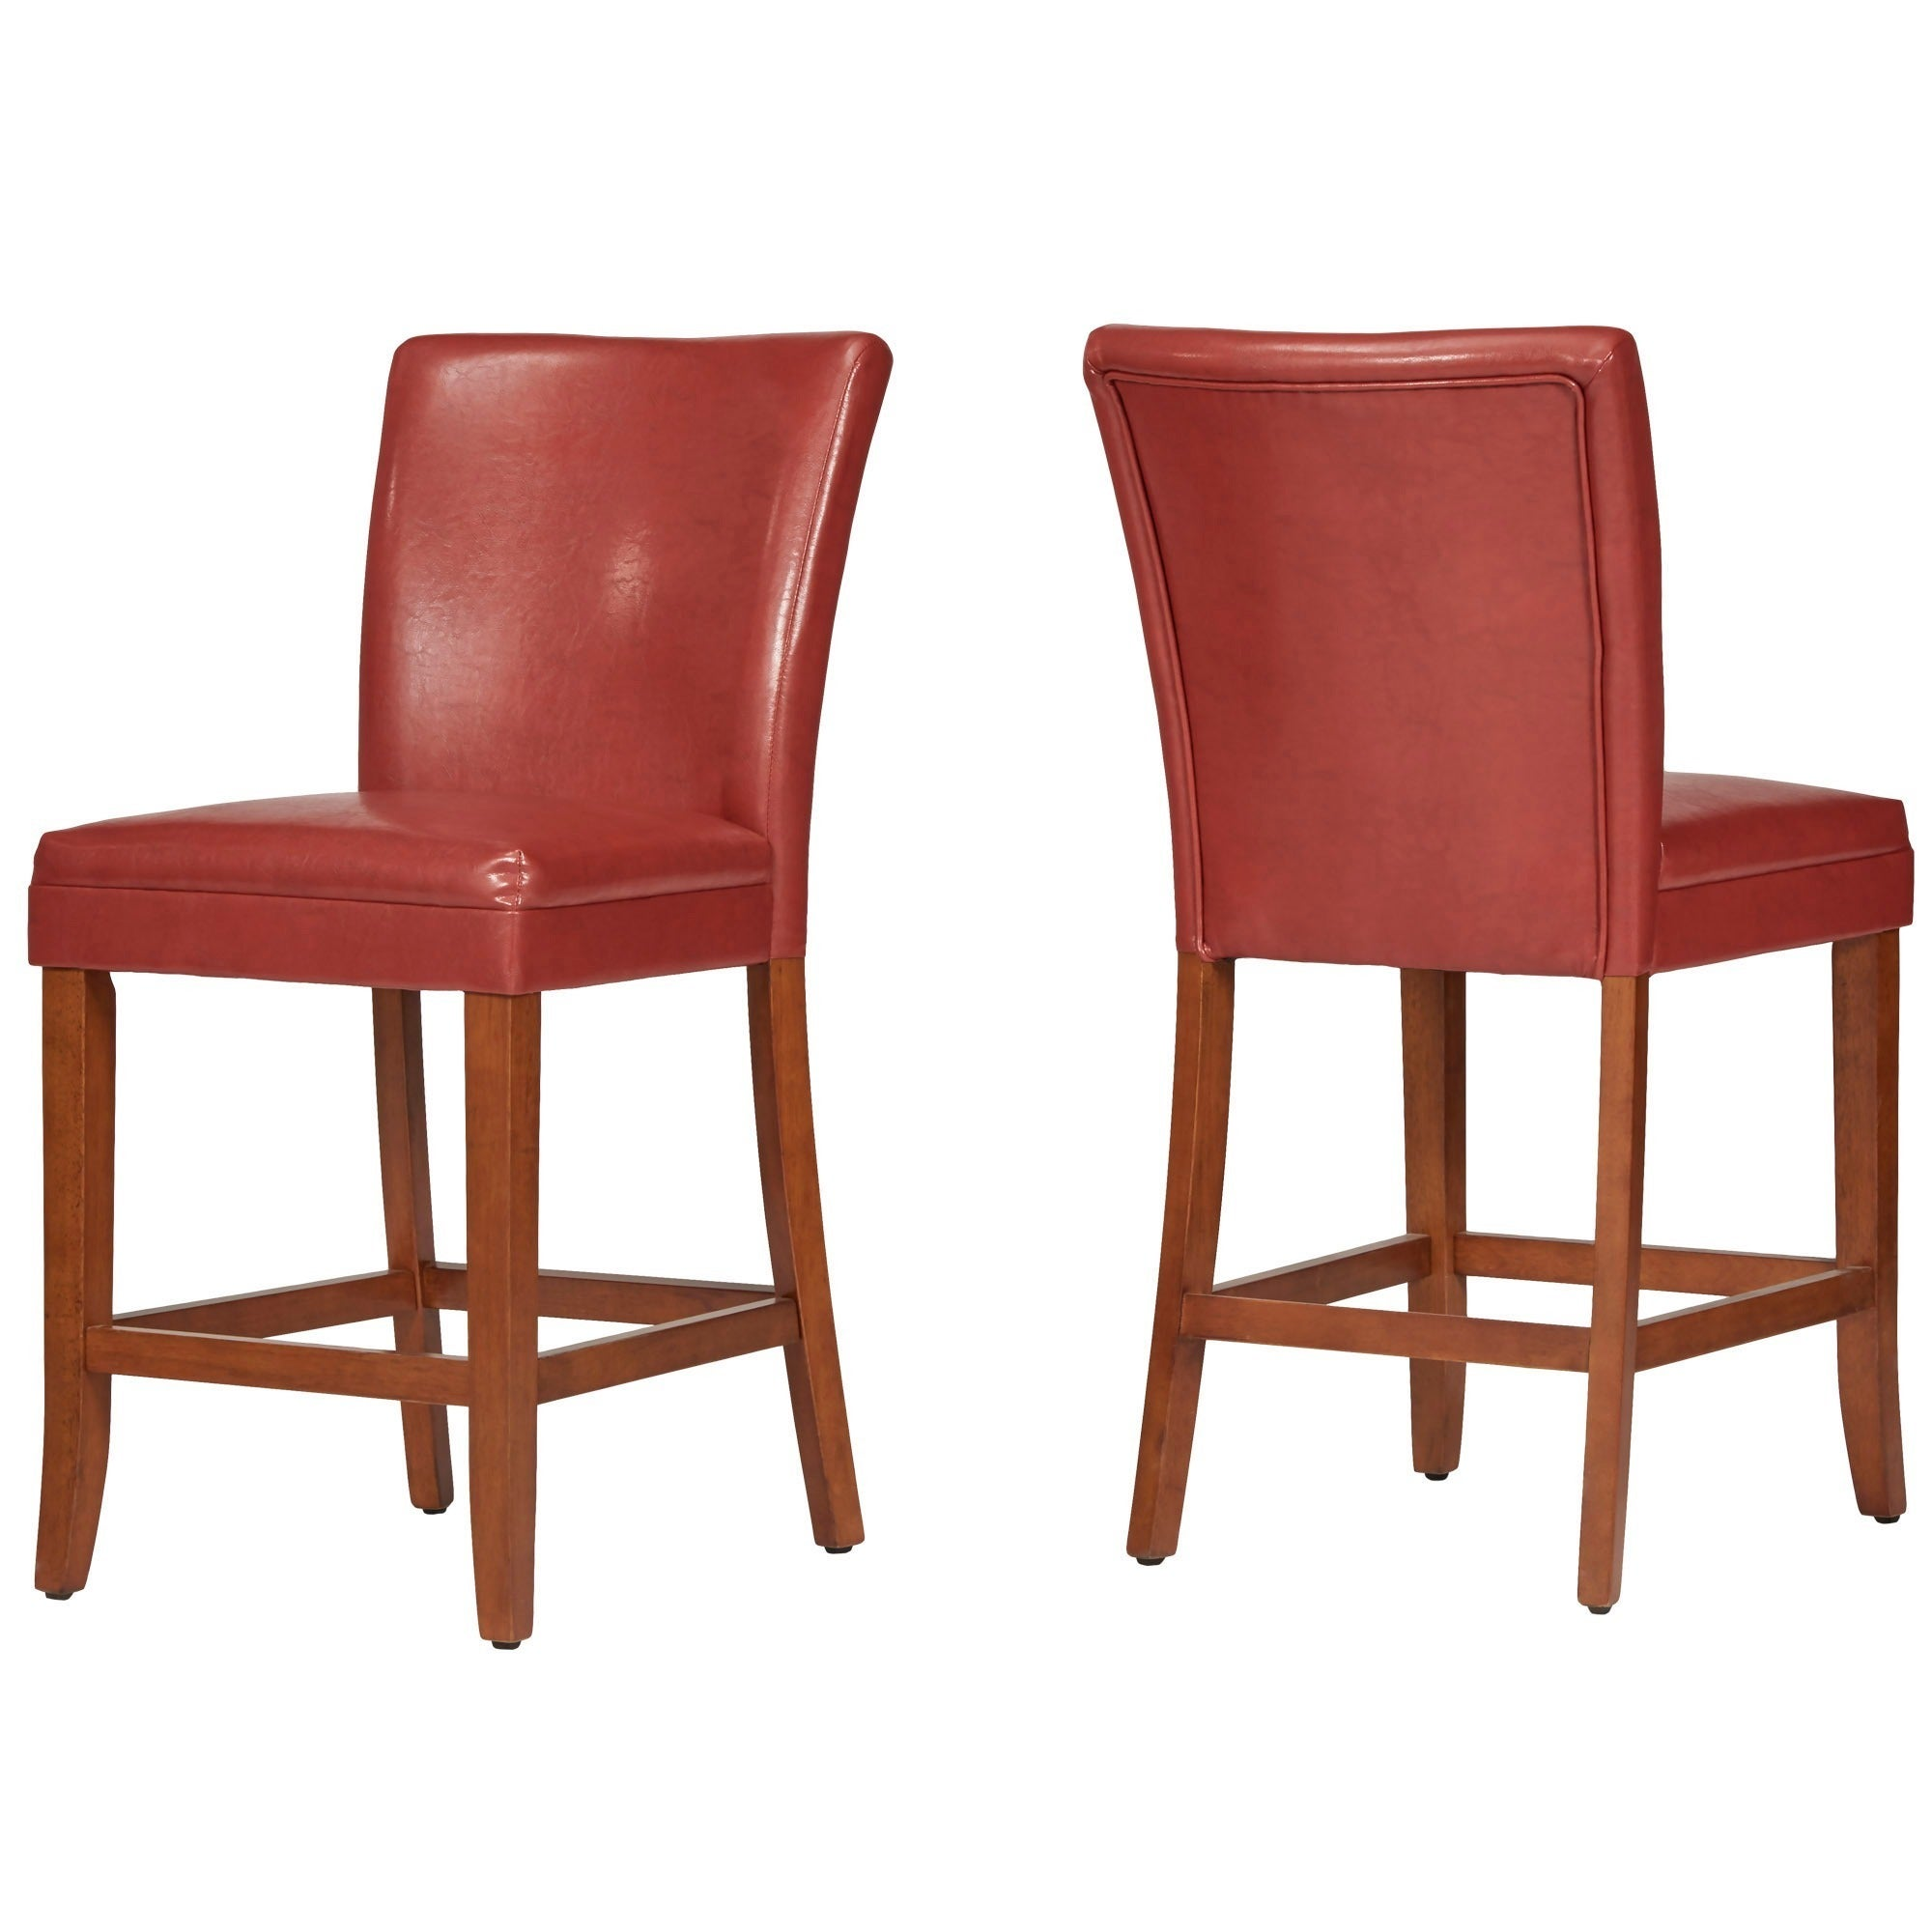 Parson Classic Upholstered Counter Height High Back Chairs (Set Of 2) By  INSPIRE Q Bold   Free Shipping Today   Overstock.com   11543022